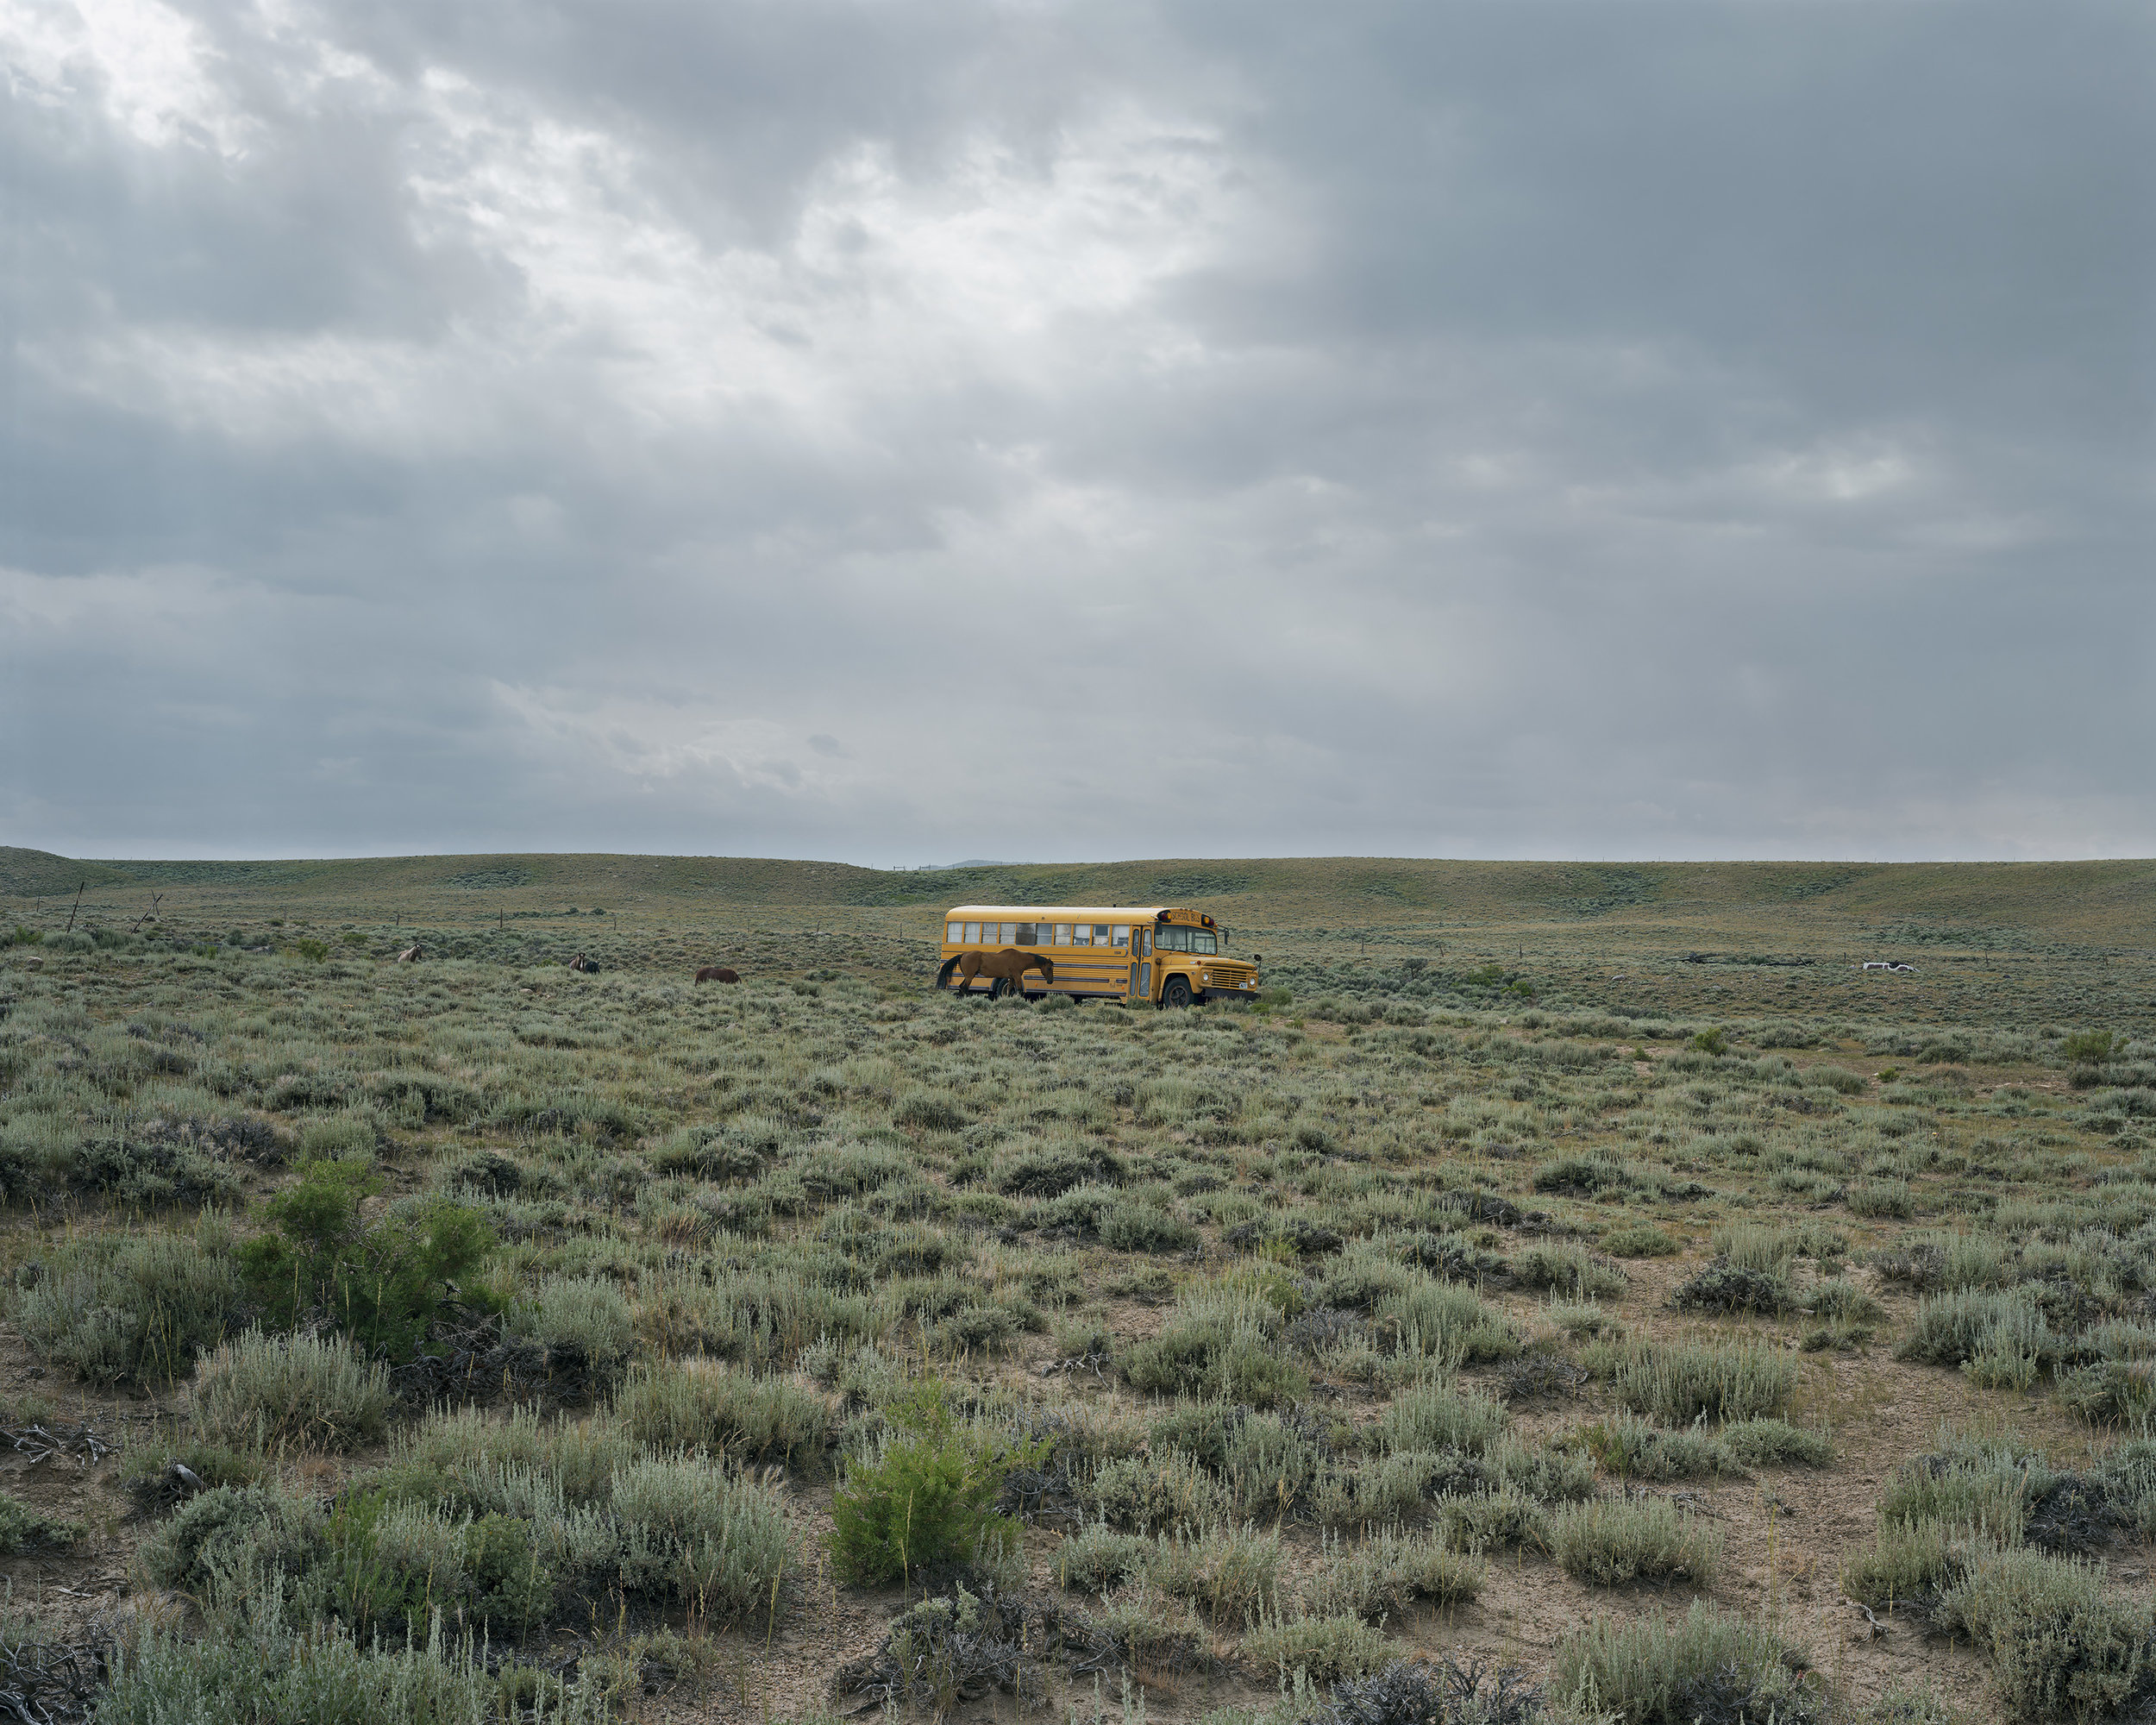 Photos by Alec Soth